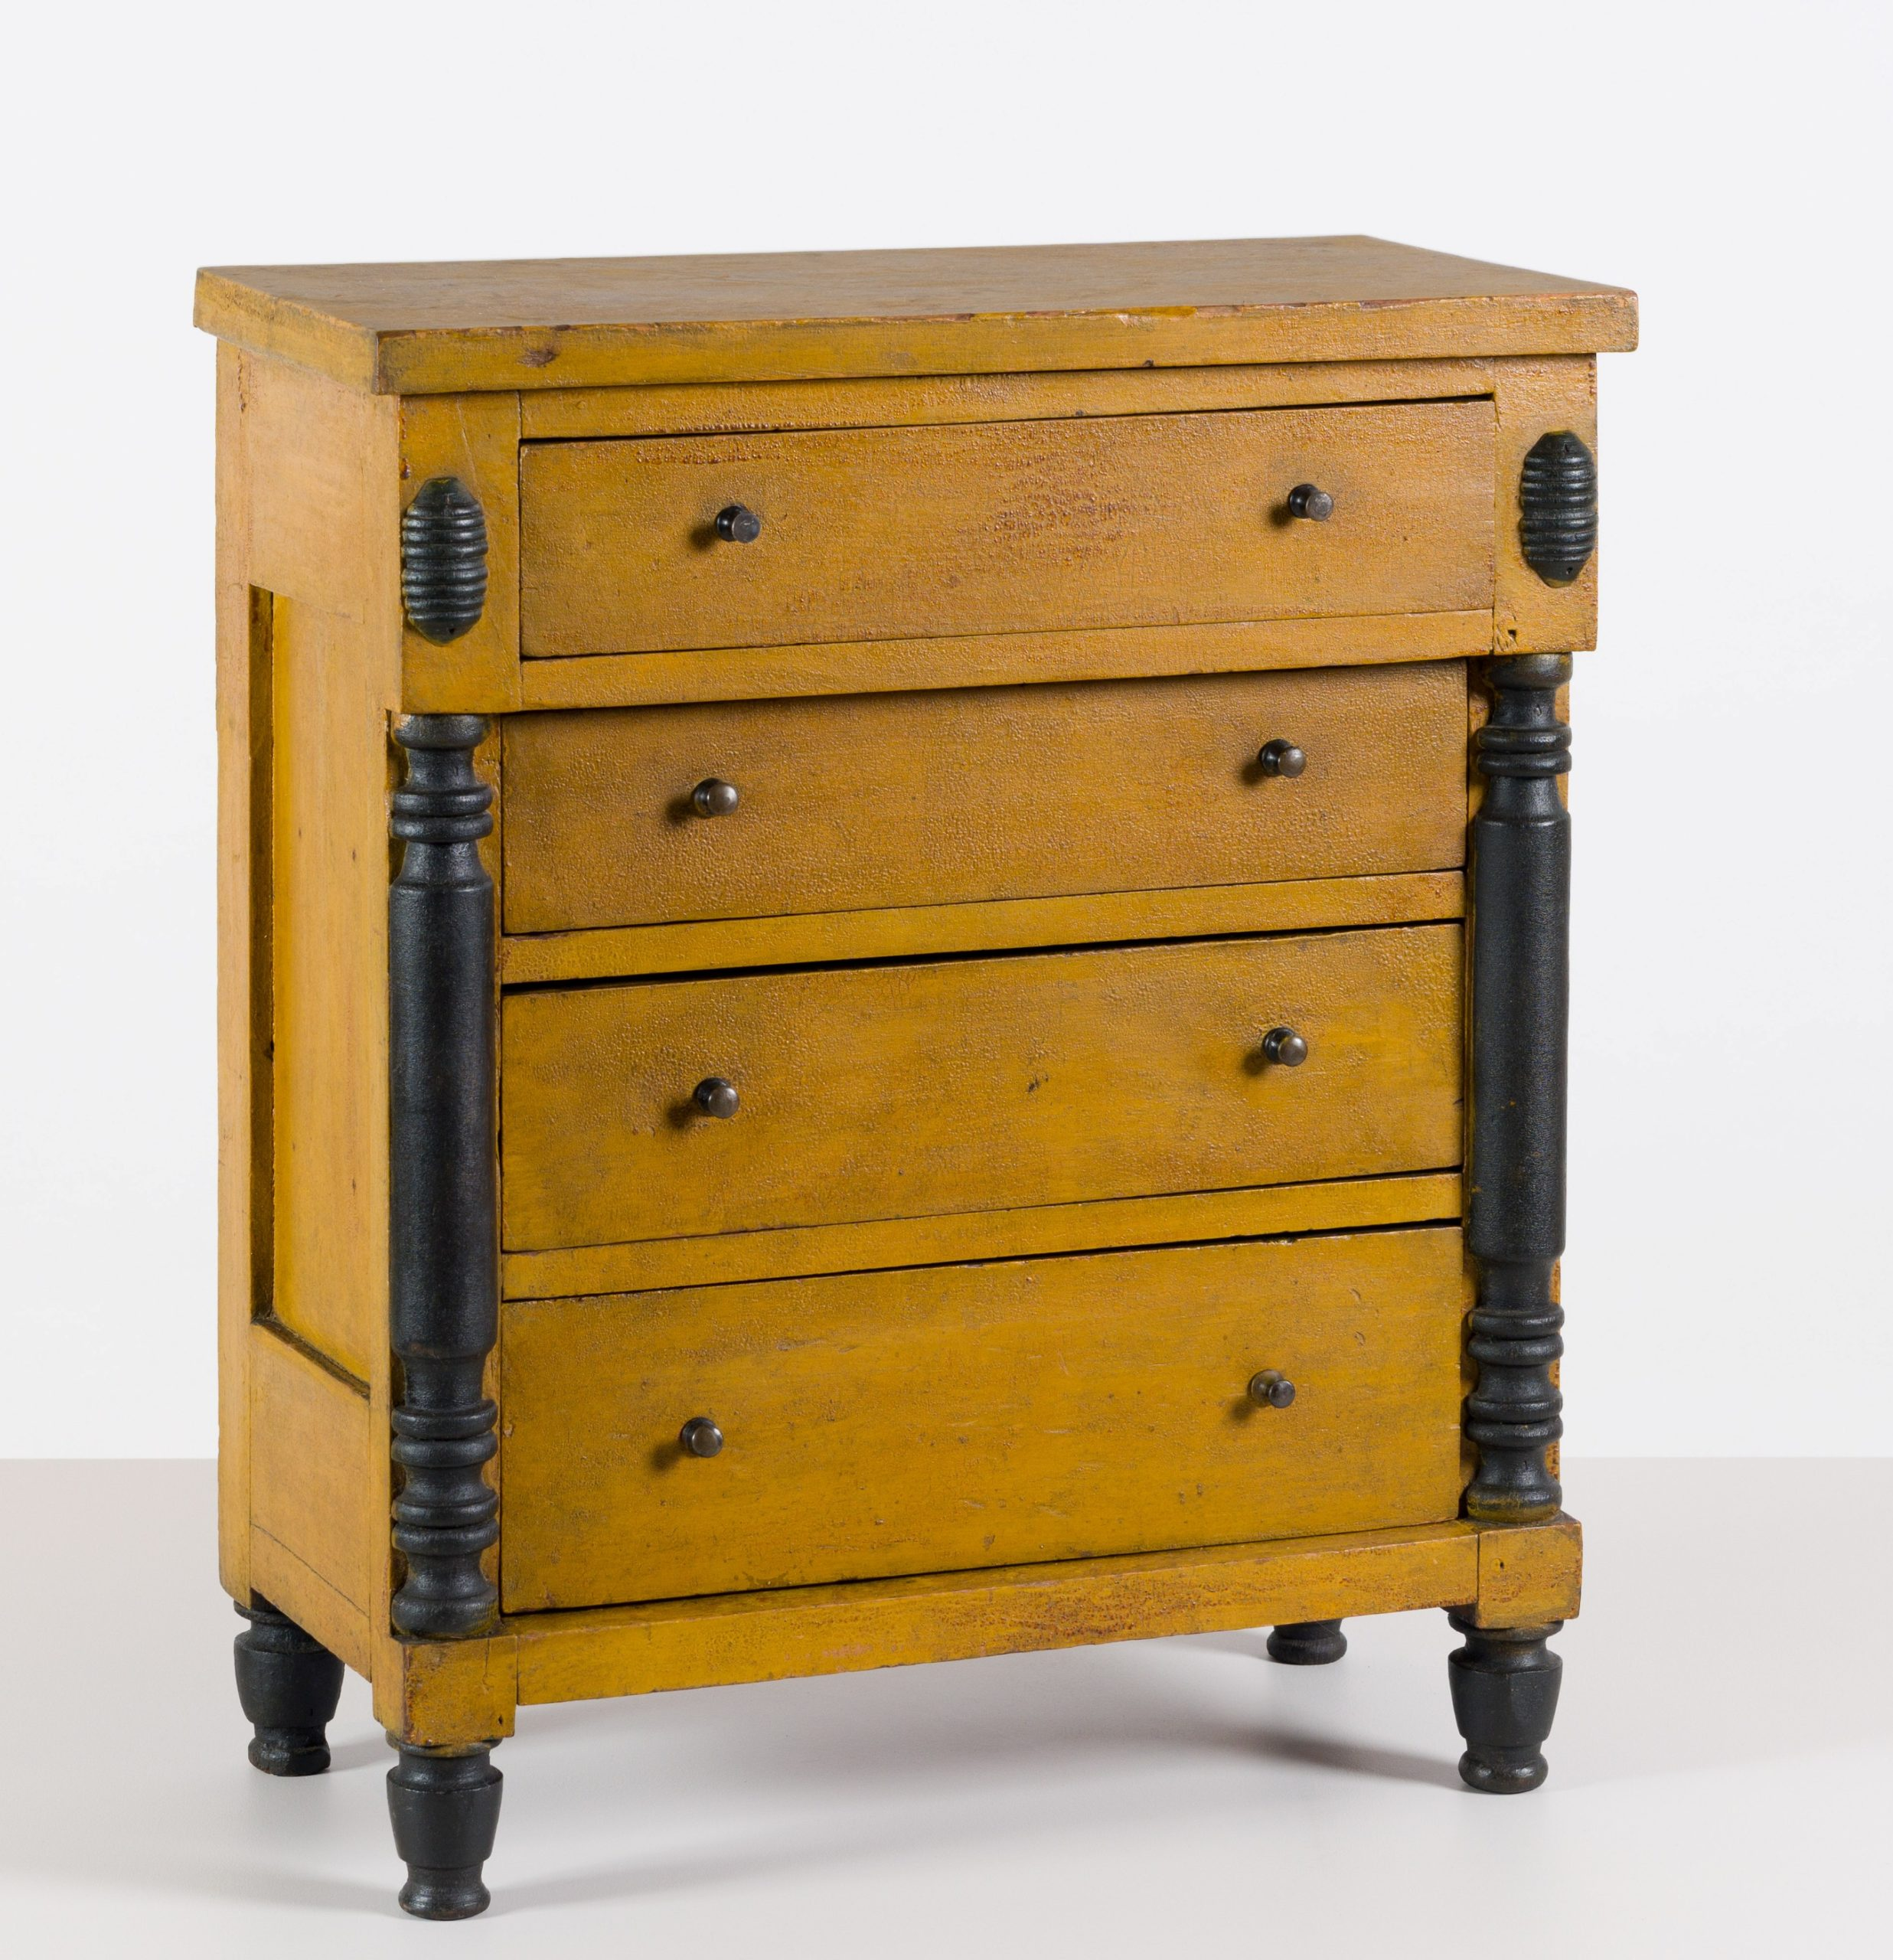 miniature yellow four-drawer chest rel=